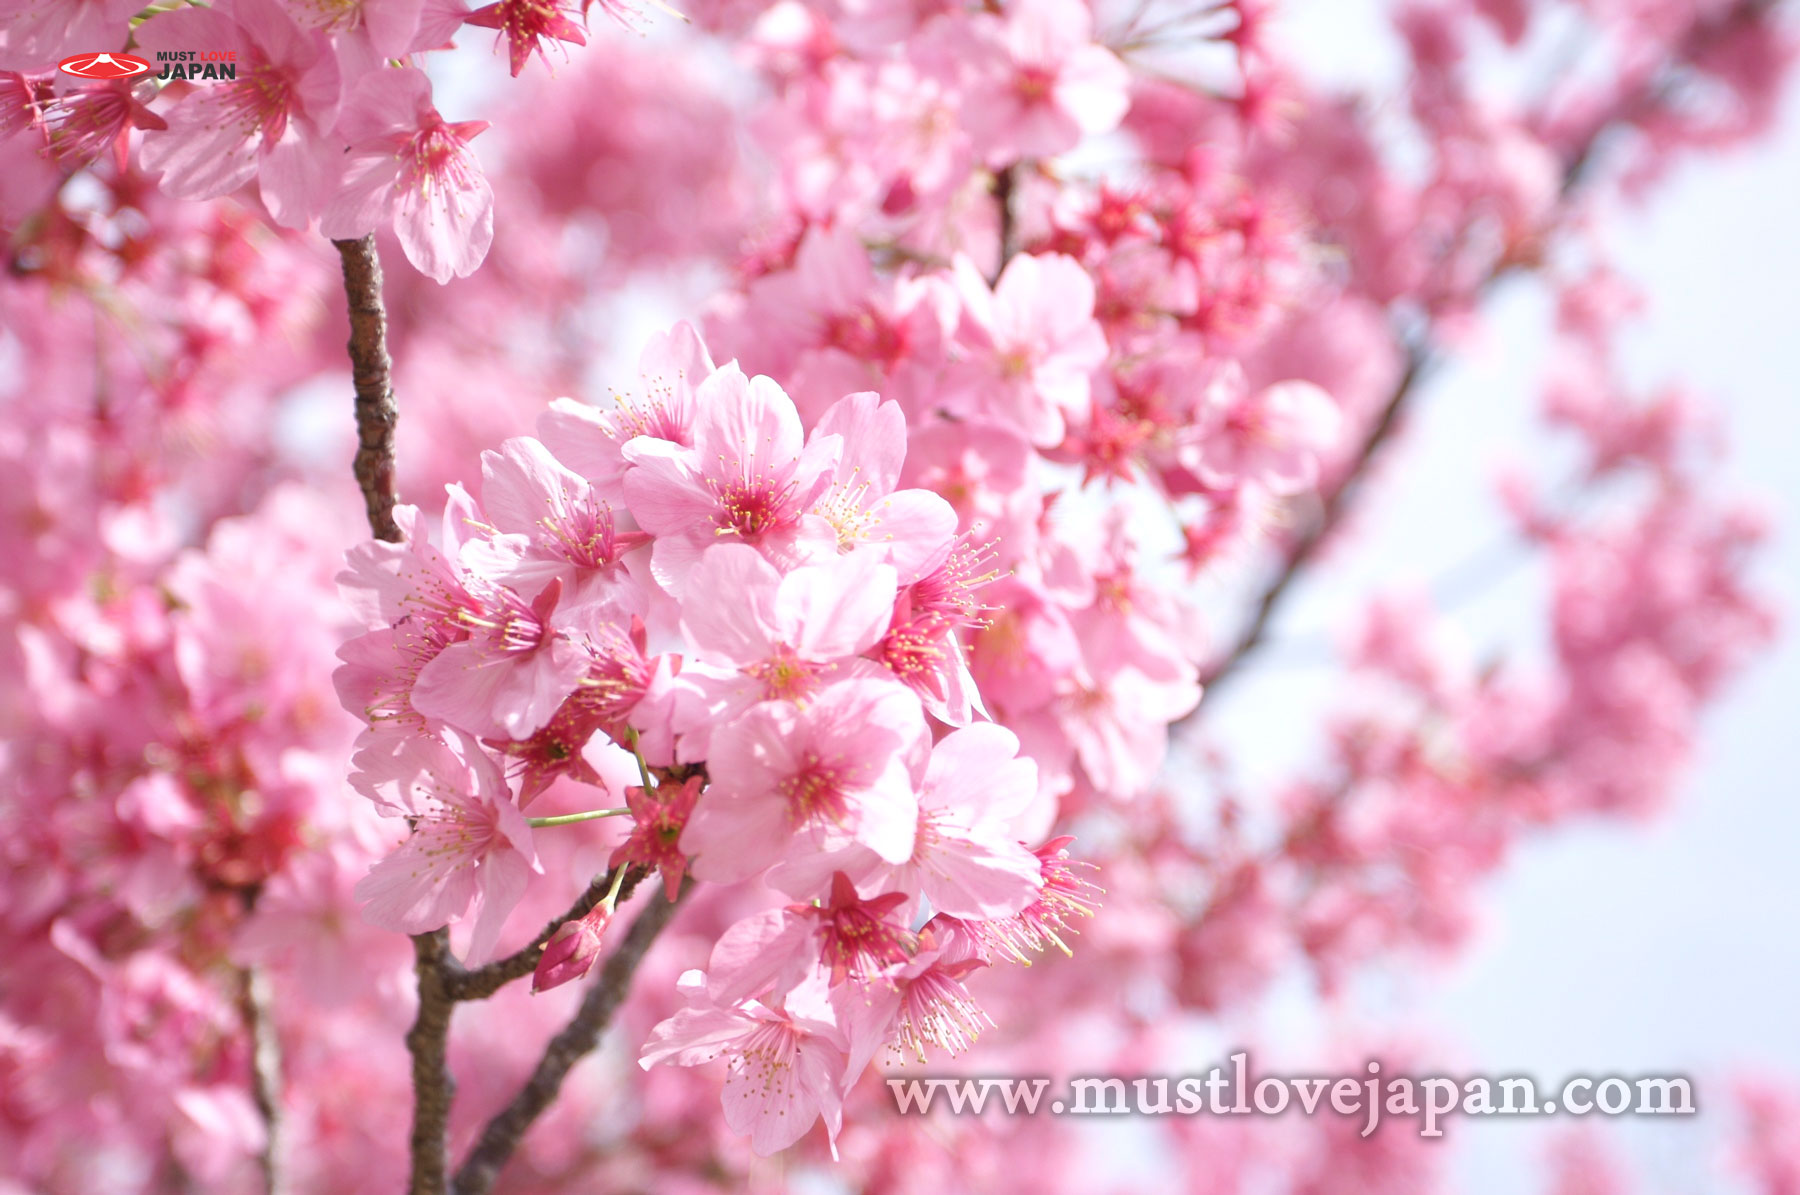 Flowers of japan inspiration interior designs flowers in japan mightylinksfo